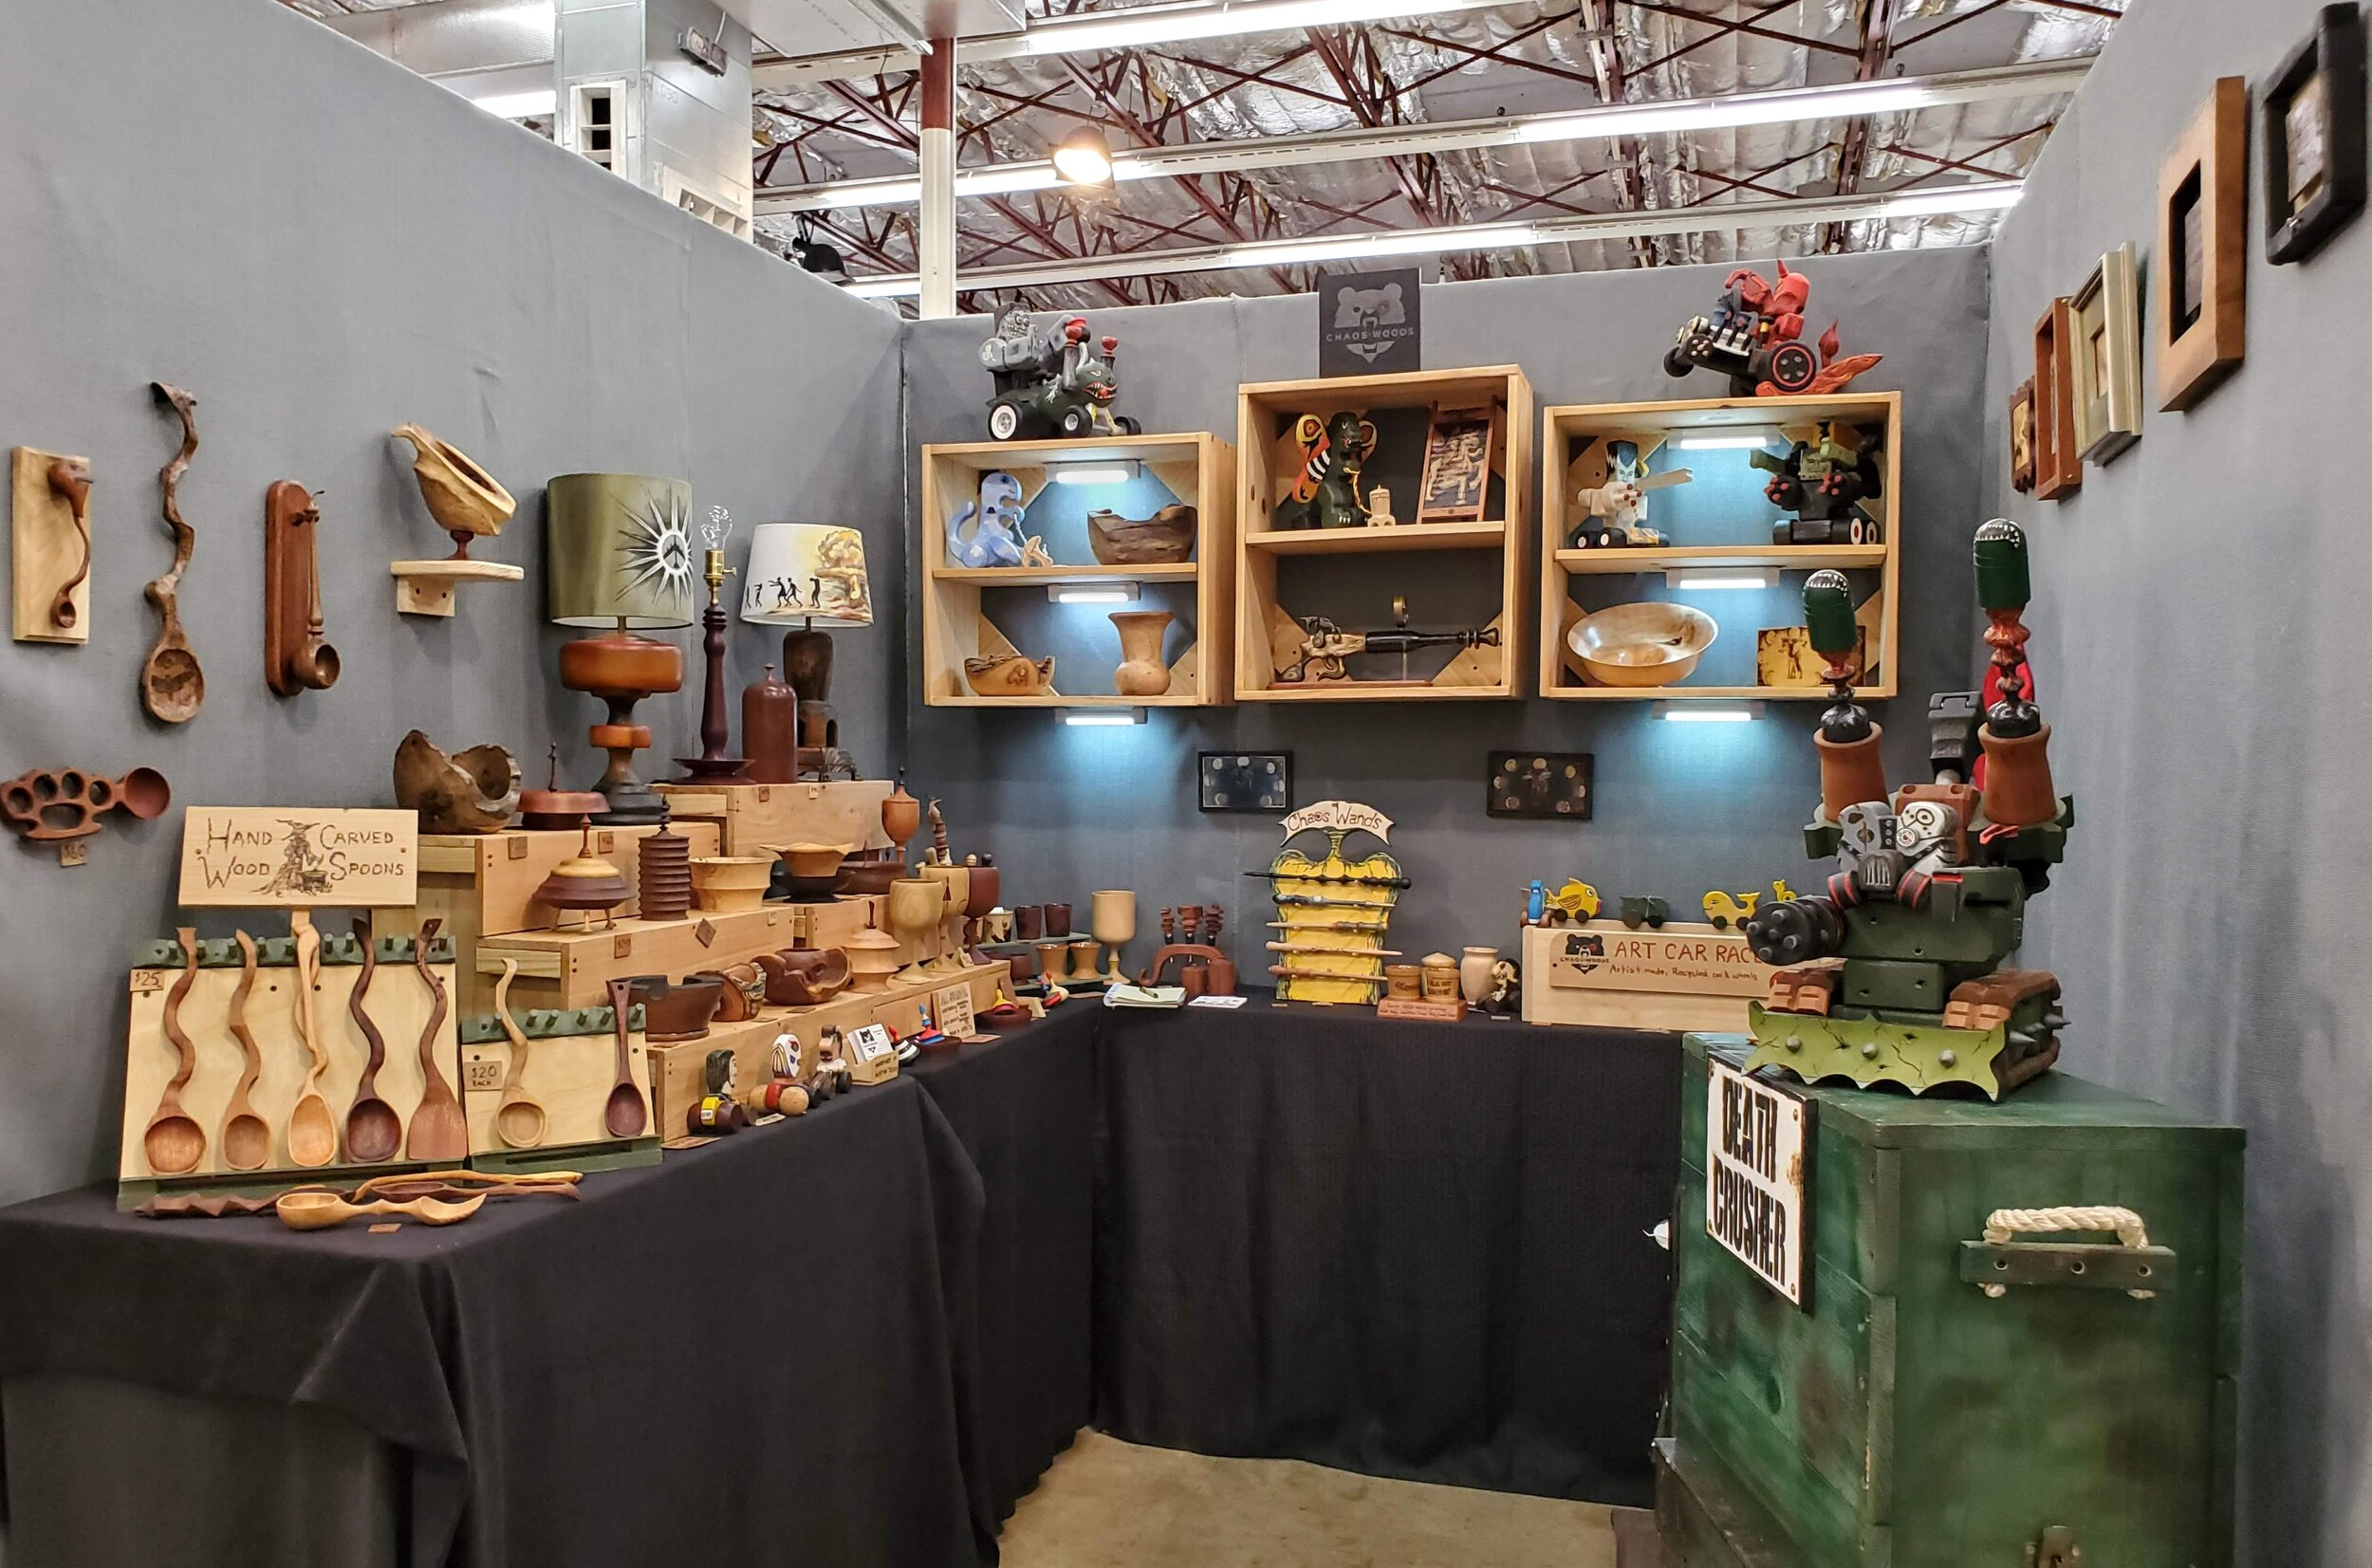 Booth set up during the West Austin Studio Tour (WEST).